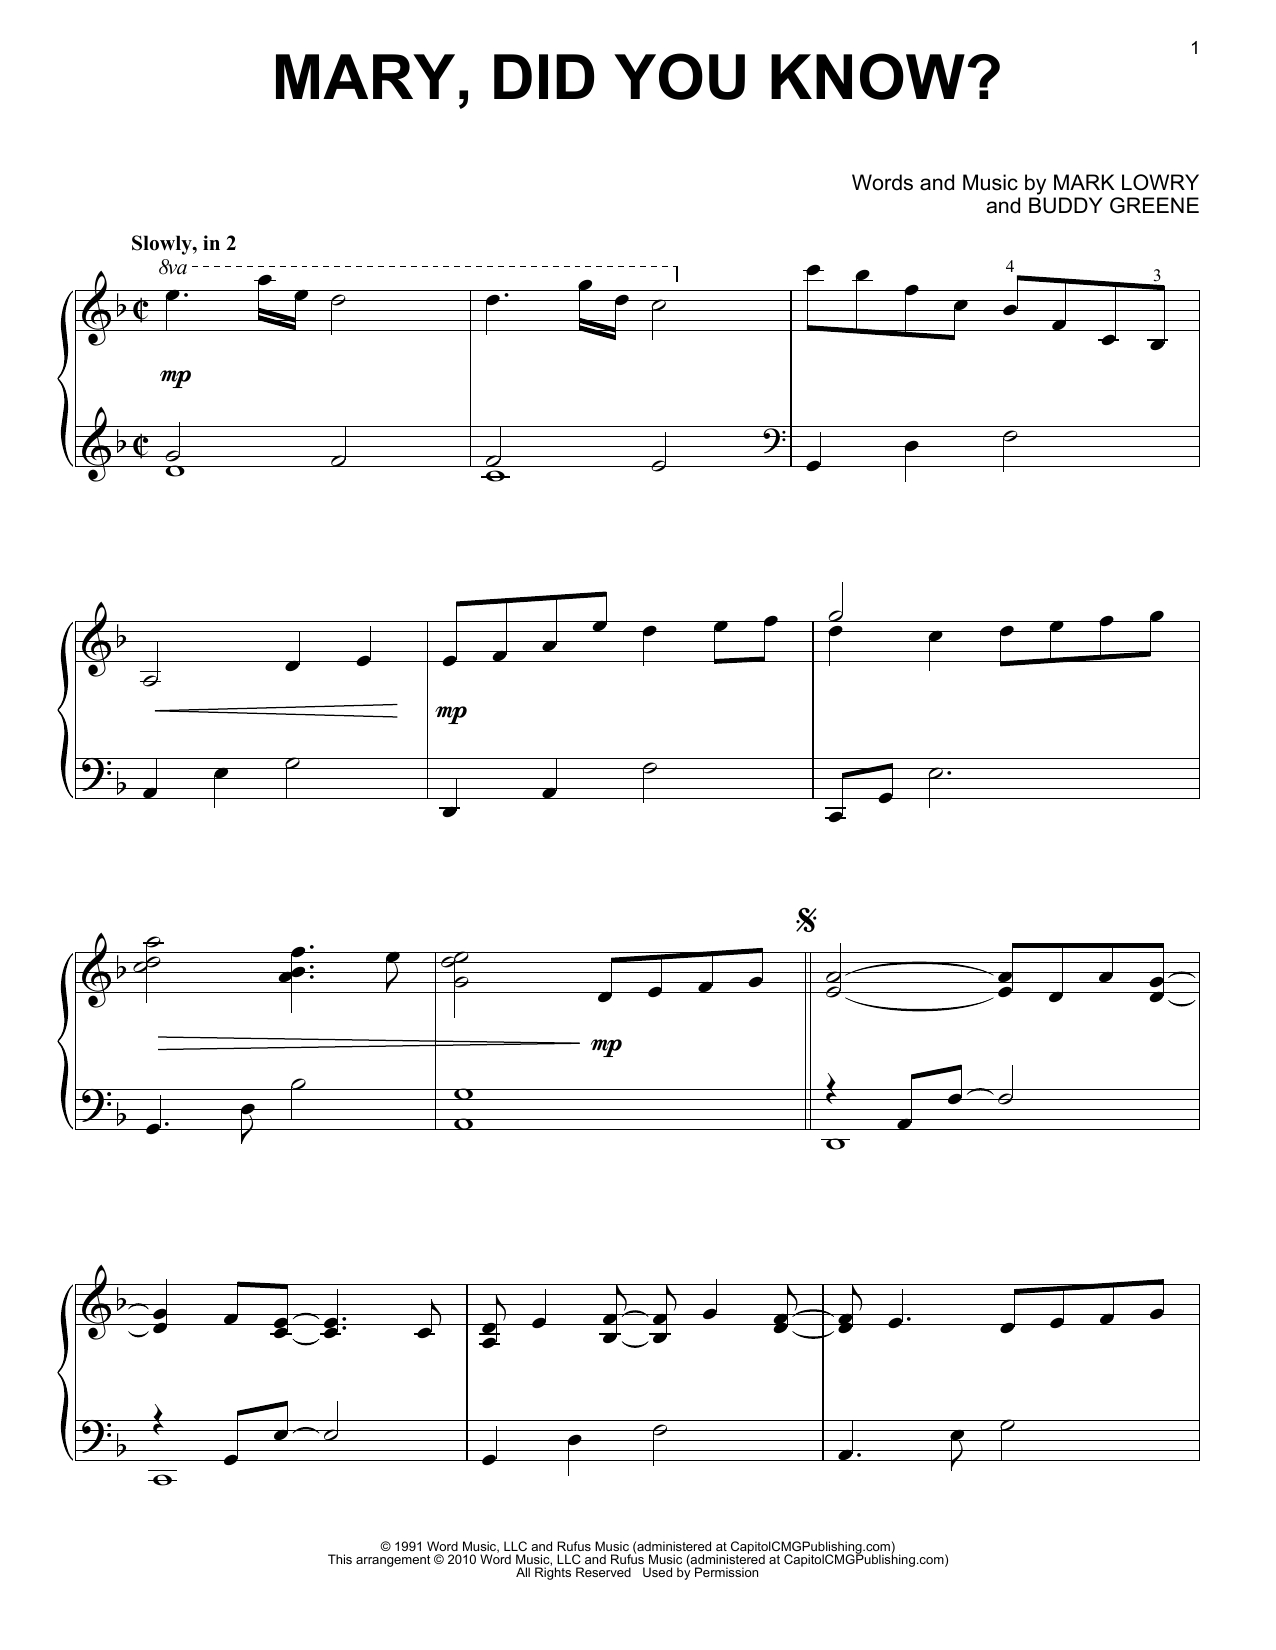 Mary Did You Know Chords Mark Lowry Mary Did You Know Sheet Music Notes Chords Download Printable Very Easy Piano Sku 173410